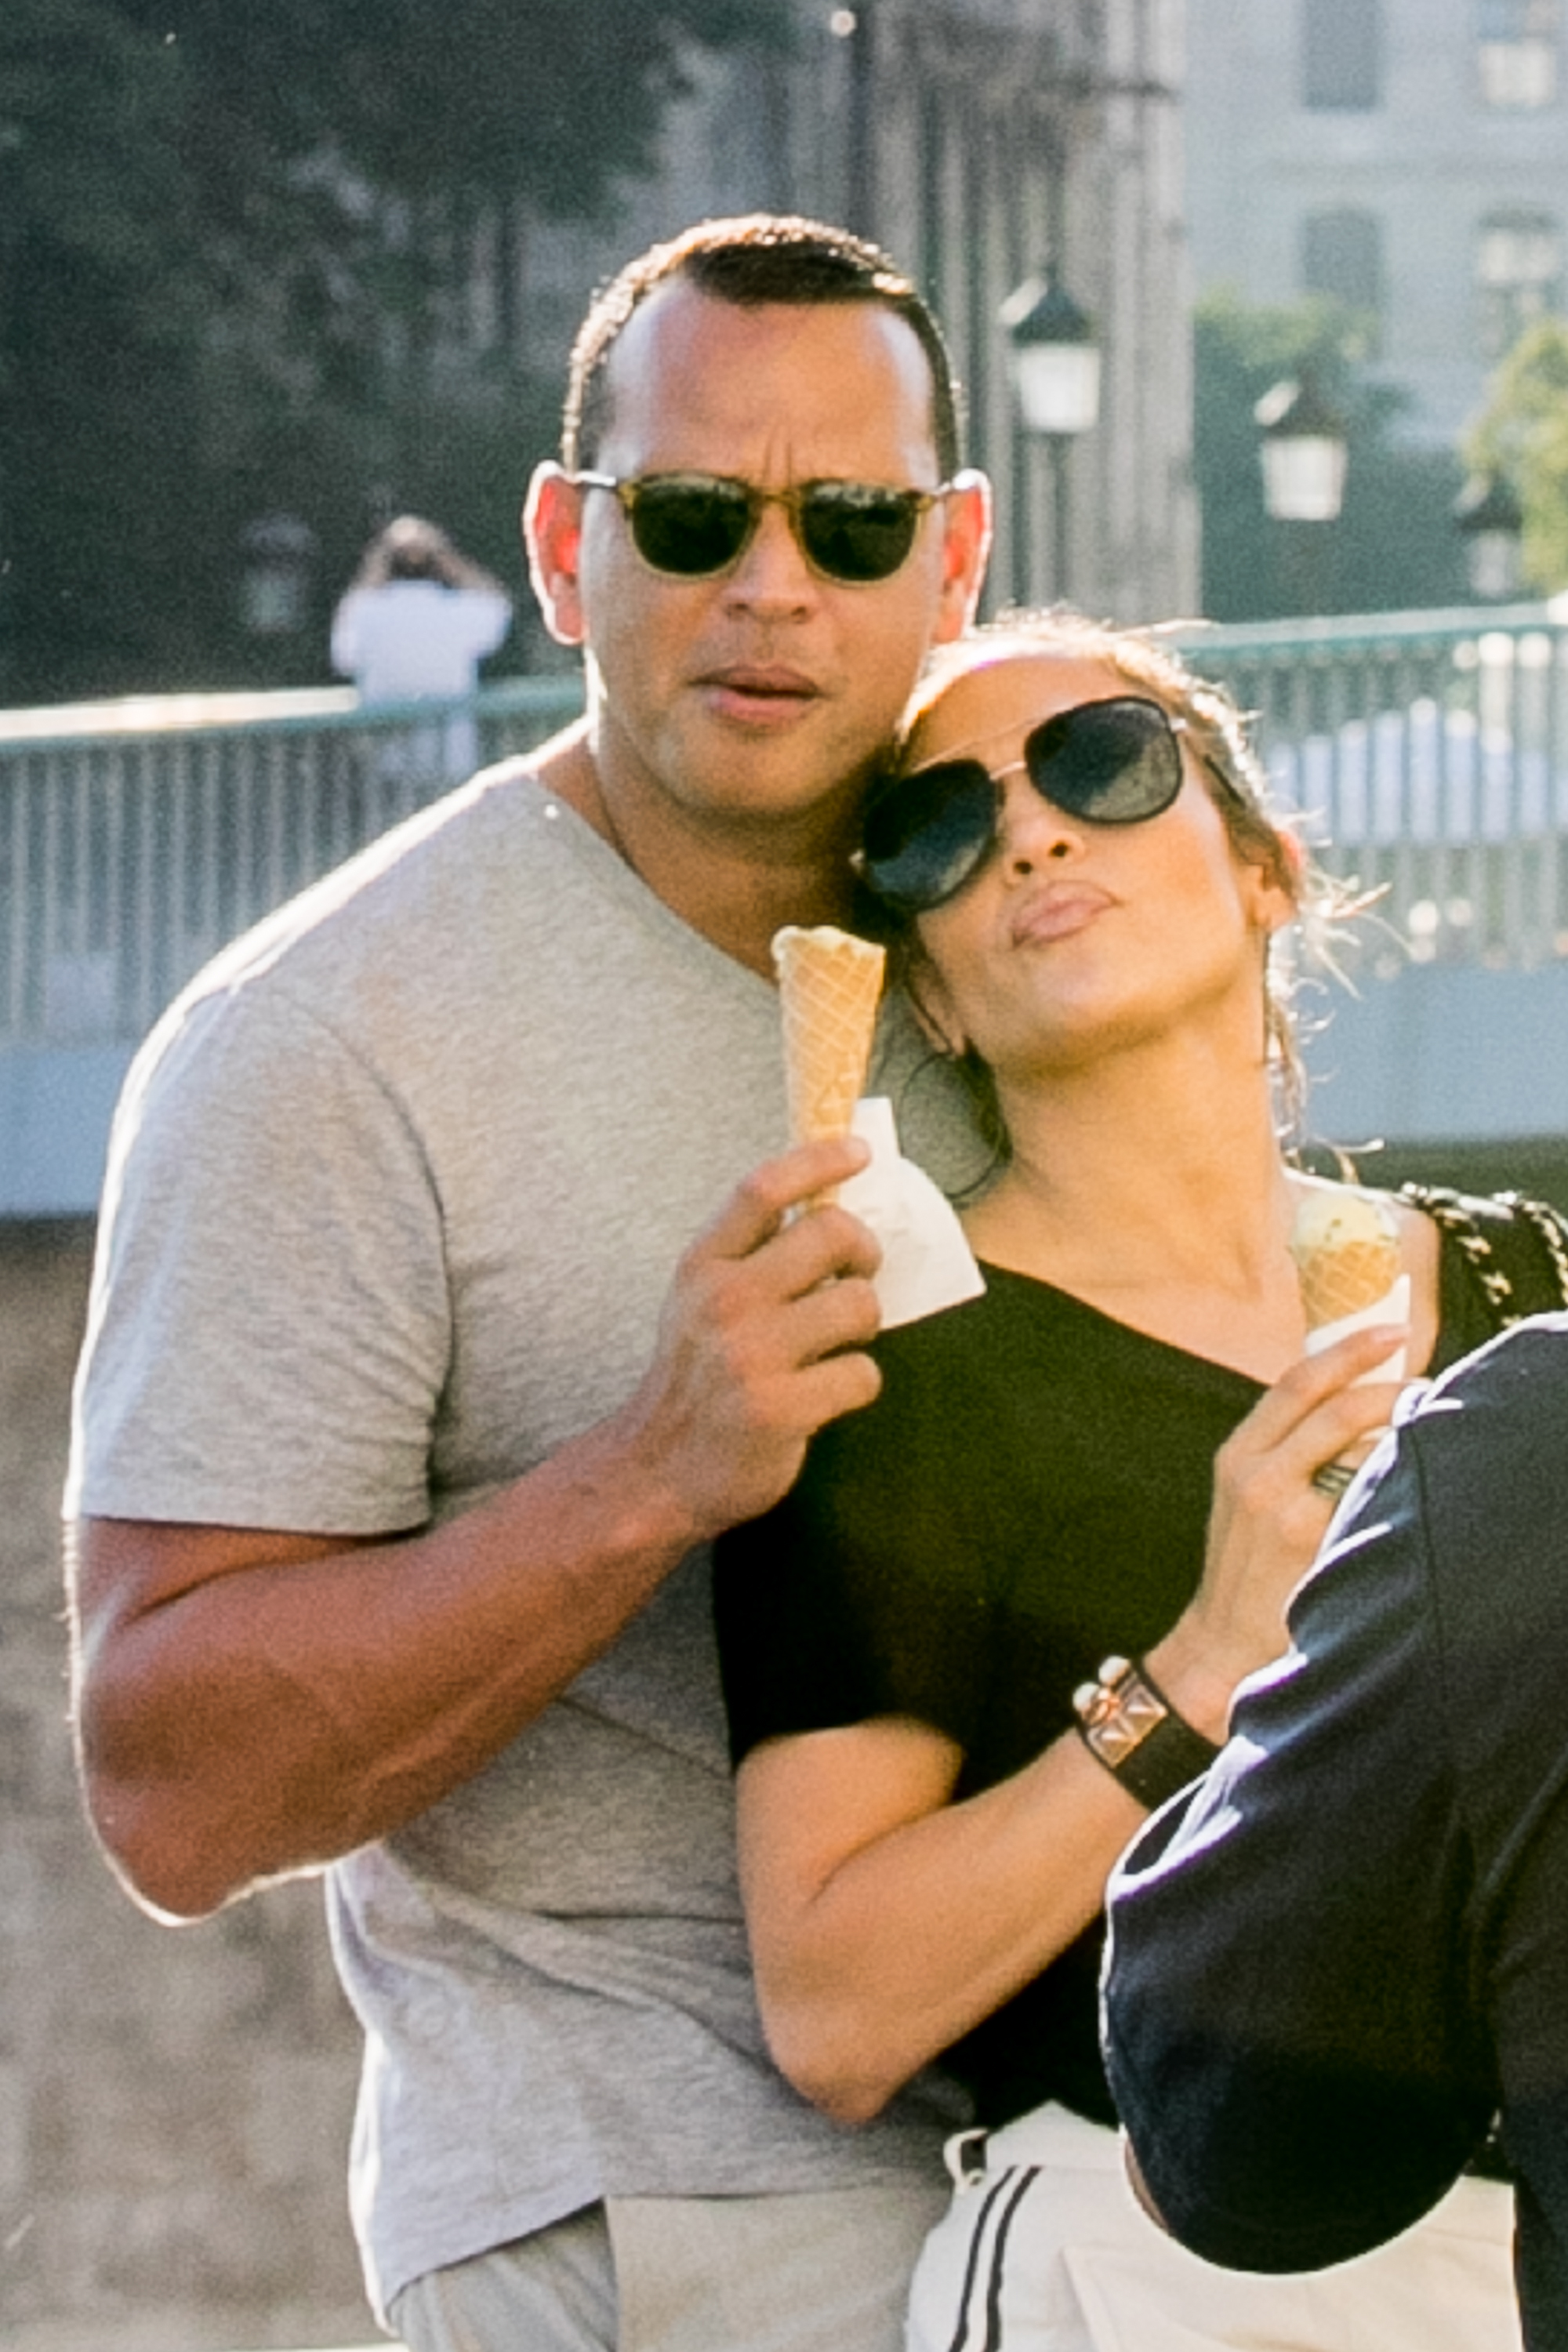 Jennifer Lopez and Alex Rodriguez Sighting In Paris - June 18, 2017